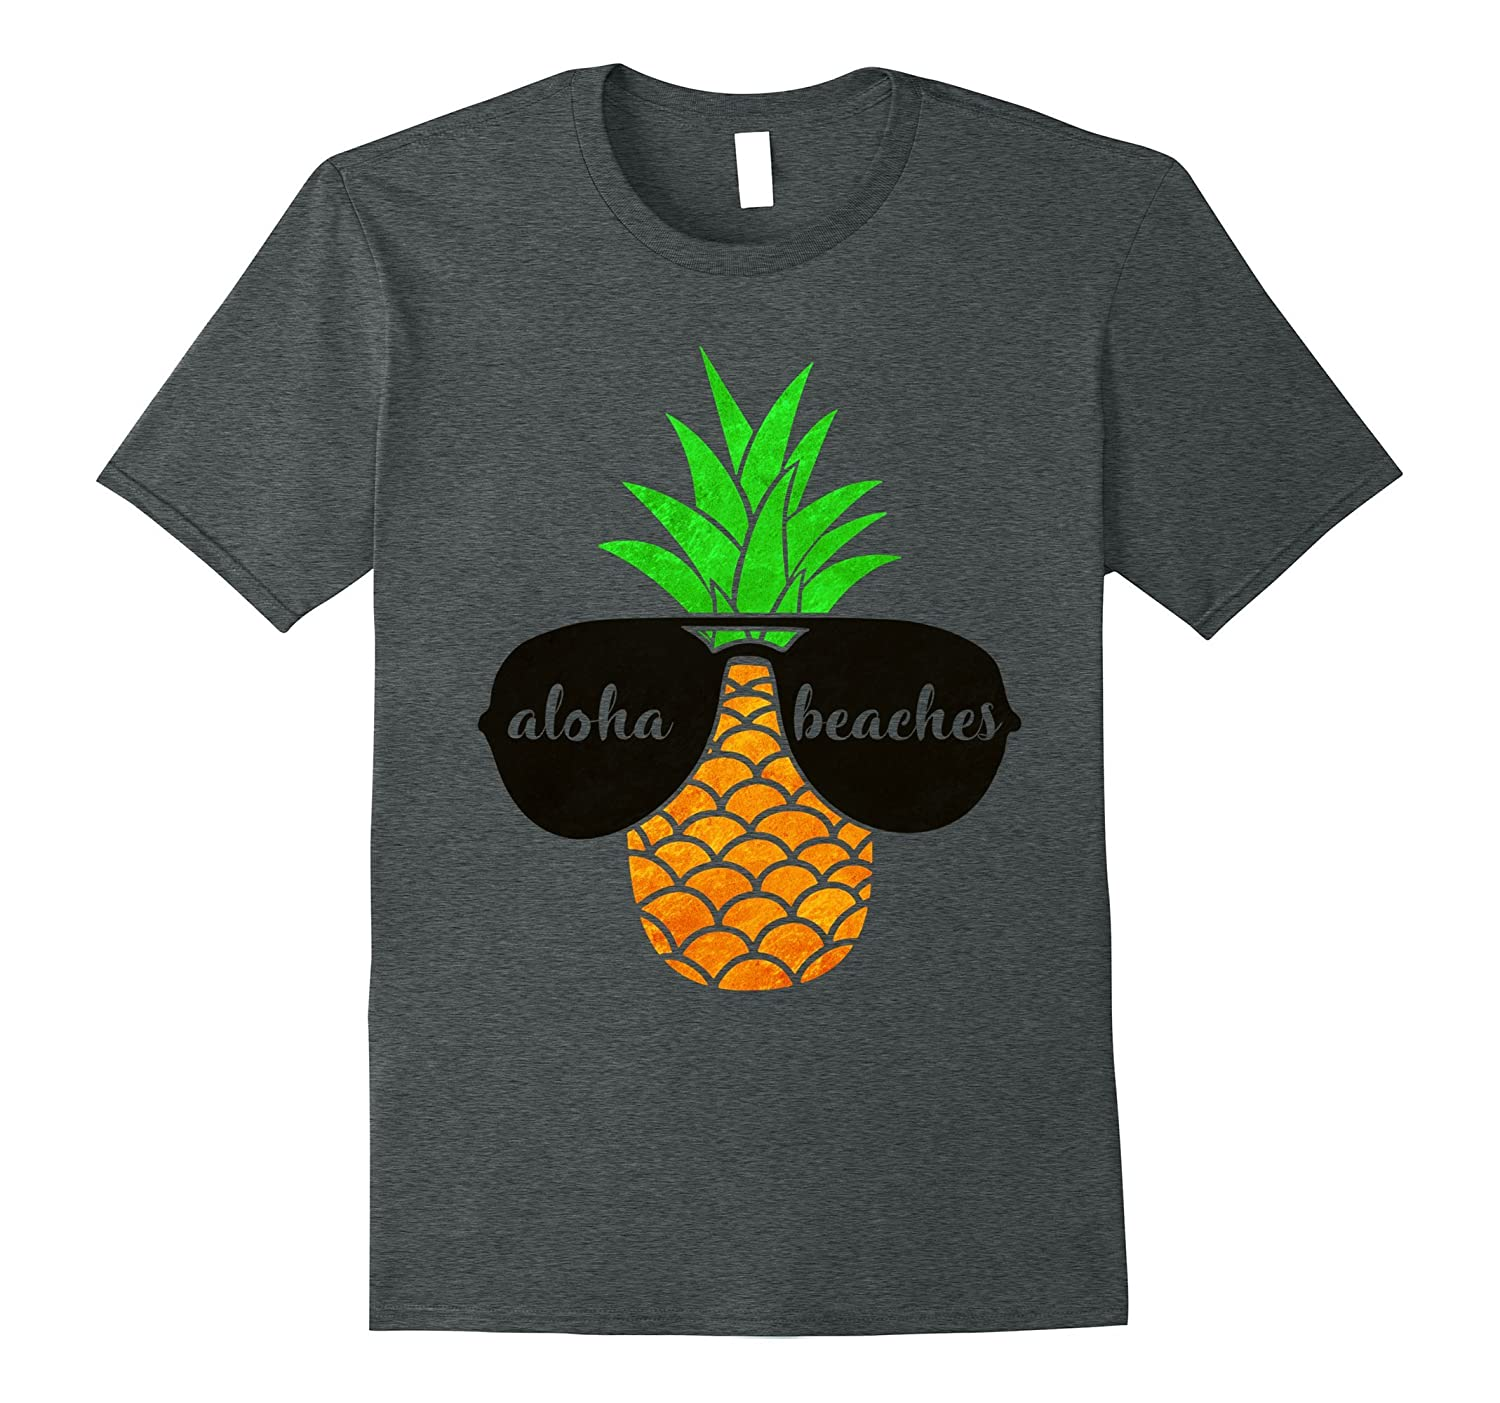 Aloha T-Shirt - Aloha Beaches Shirt - Hawaiian Shirt Summer-T-Shirt